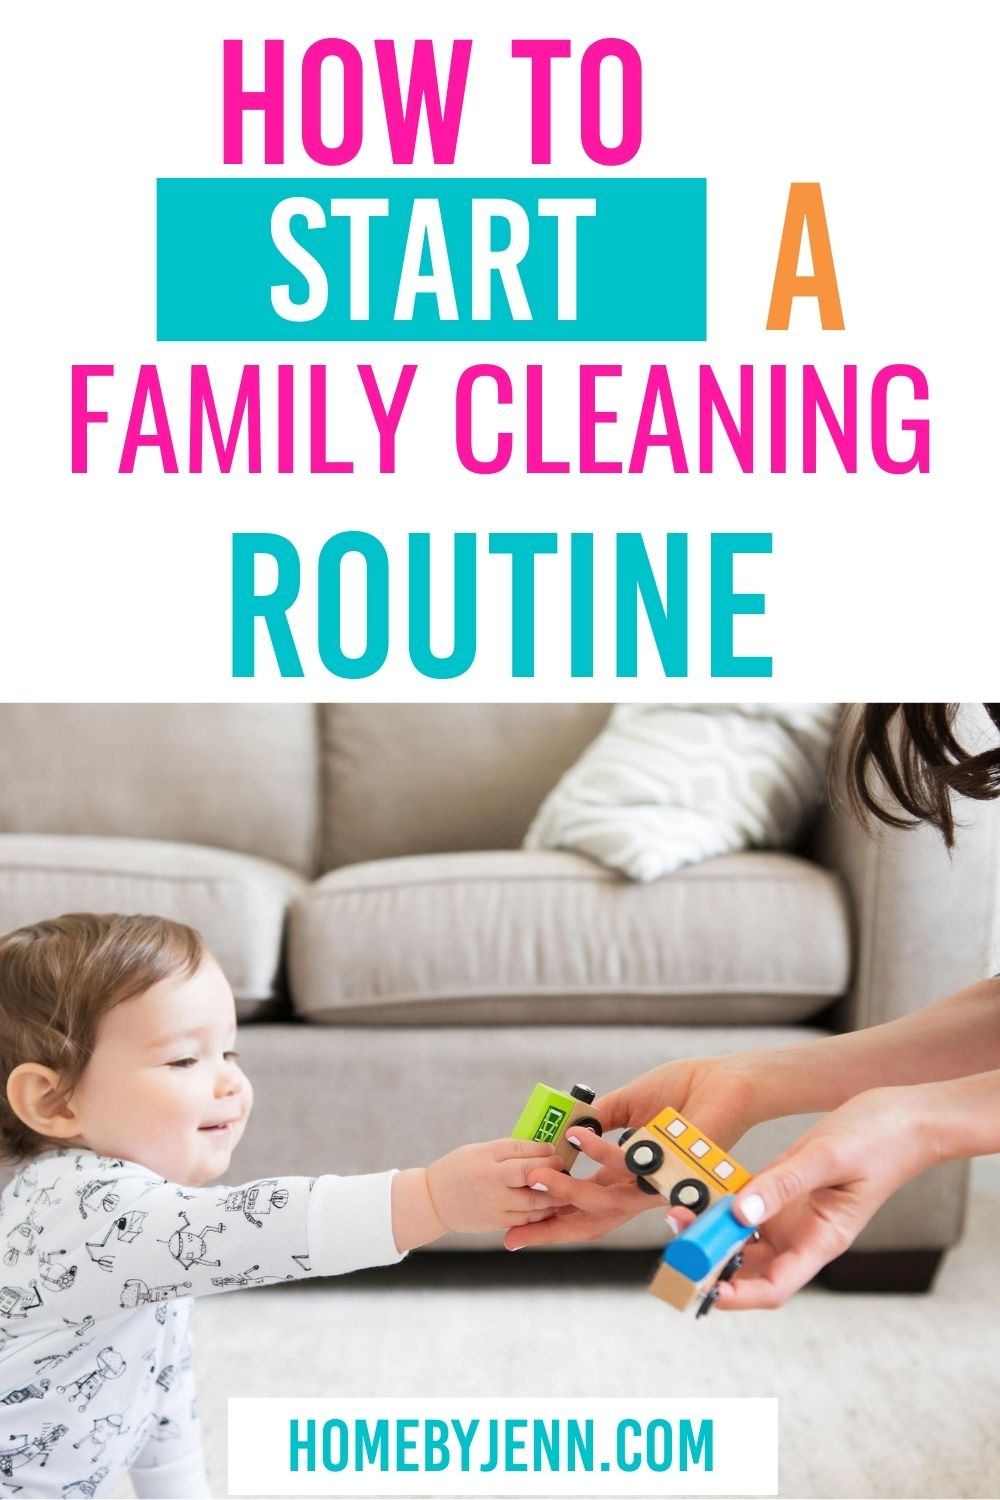 Create a family cleaning routine with this step by step tutorial and free cleaning printable and chore chart included. #cleaning #clean #cleanhome #cleanroutine #chorechart #family #familyroutine #familycleanroutine via @homebyjenn